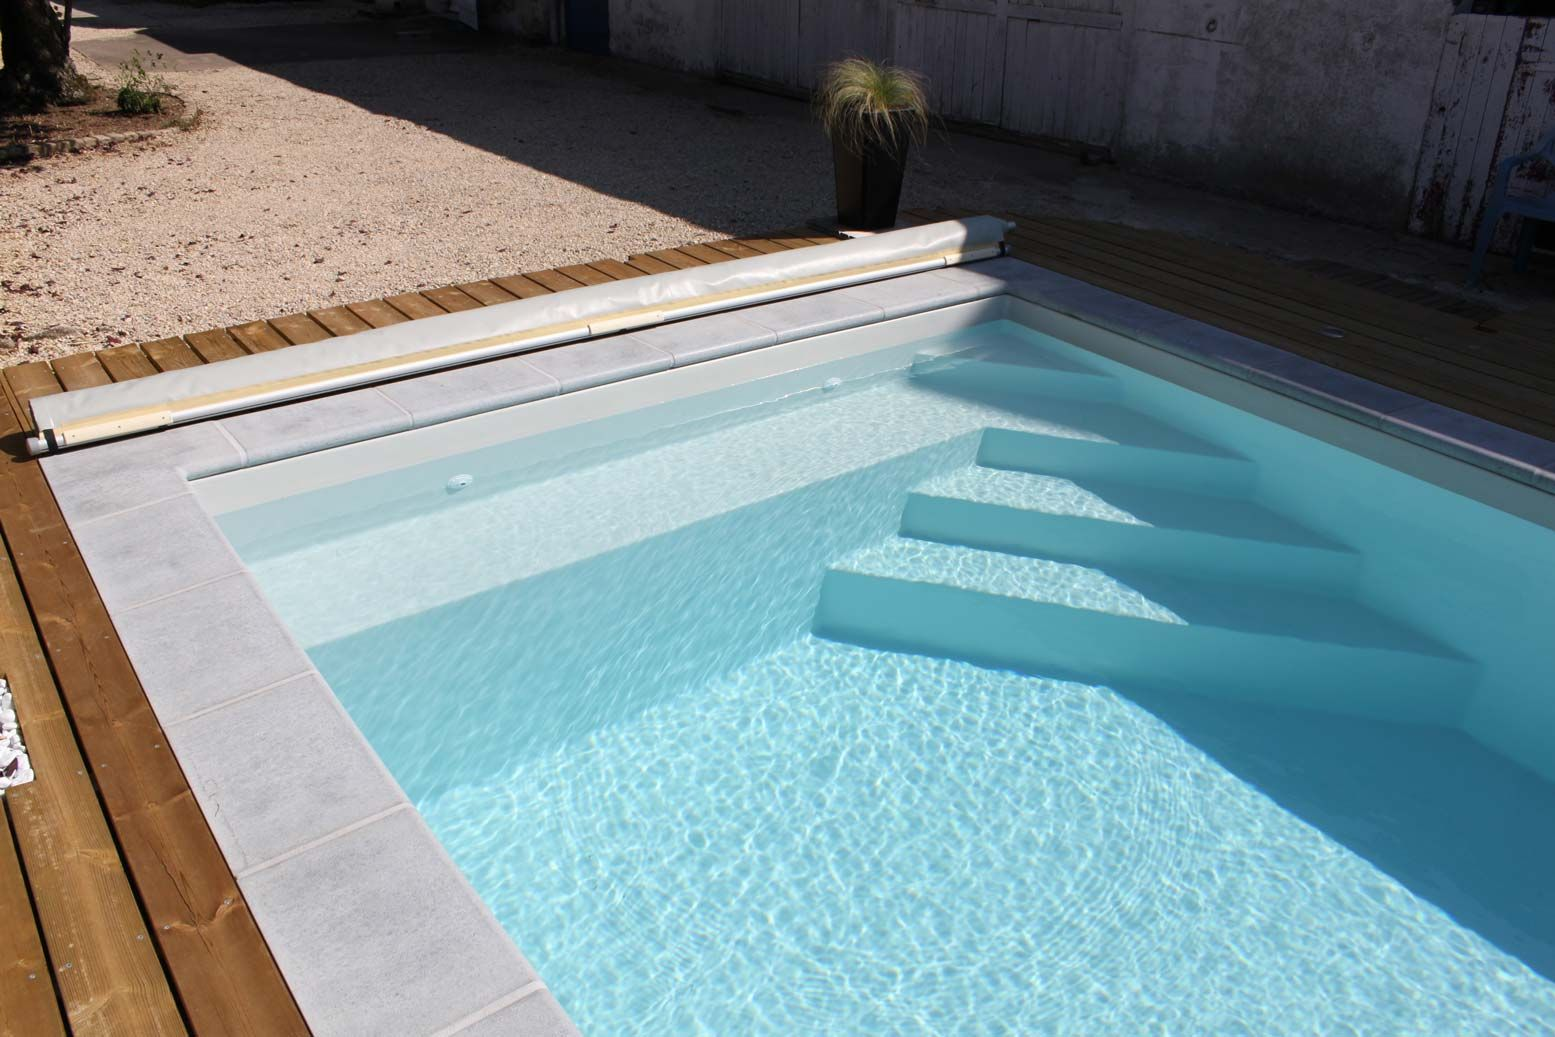 Lame De Terrasse Pvc Amenagement Piscine Escalier